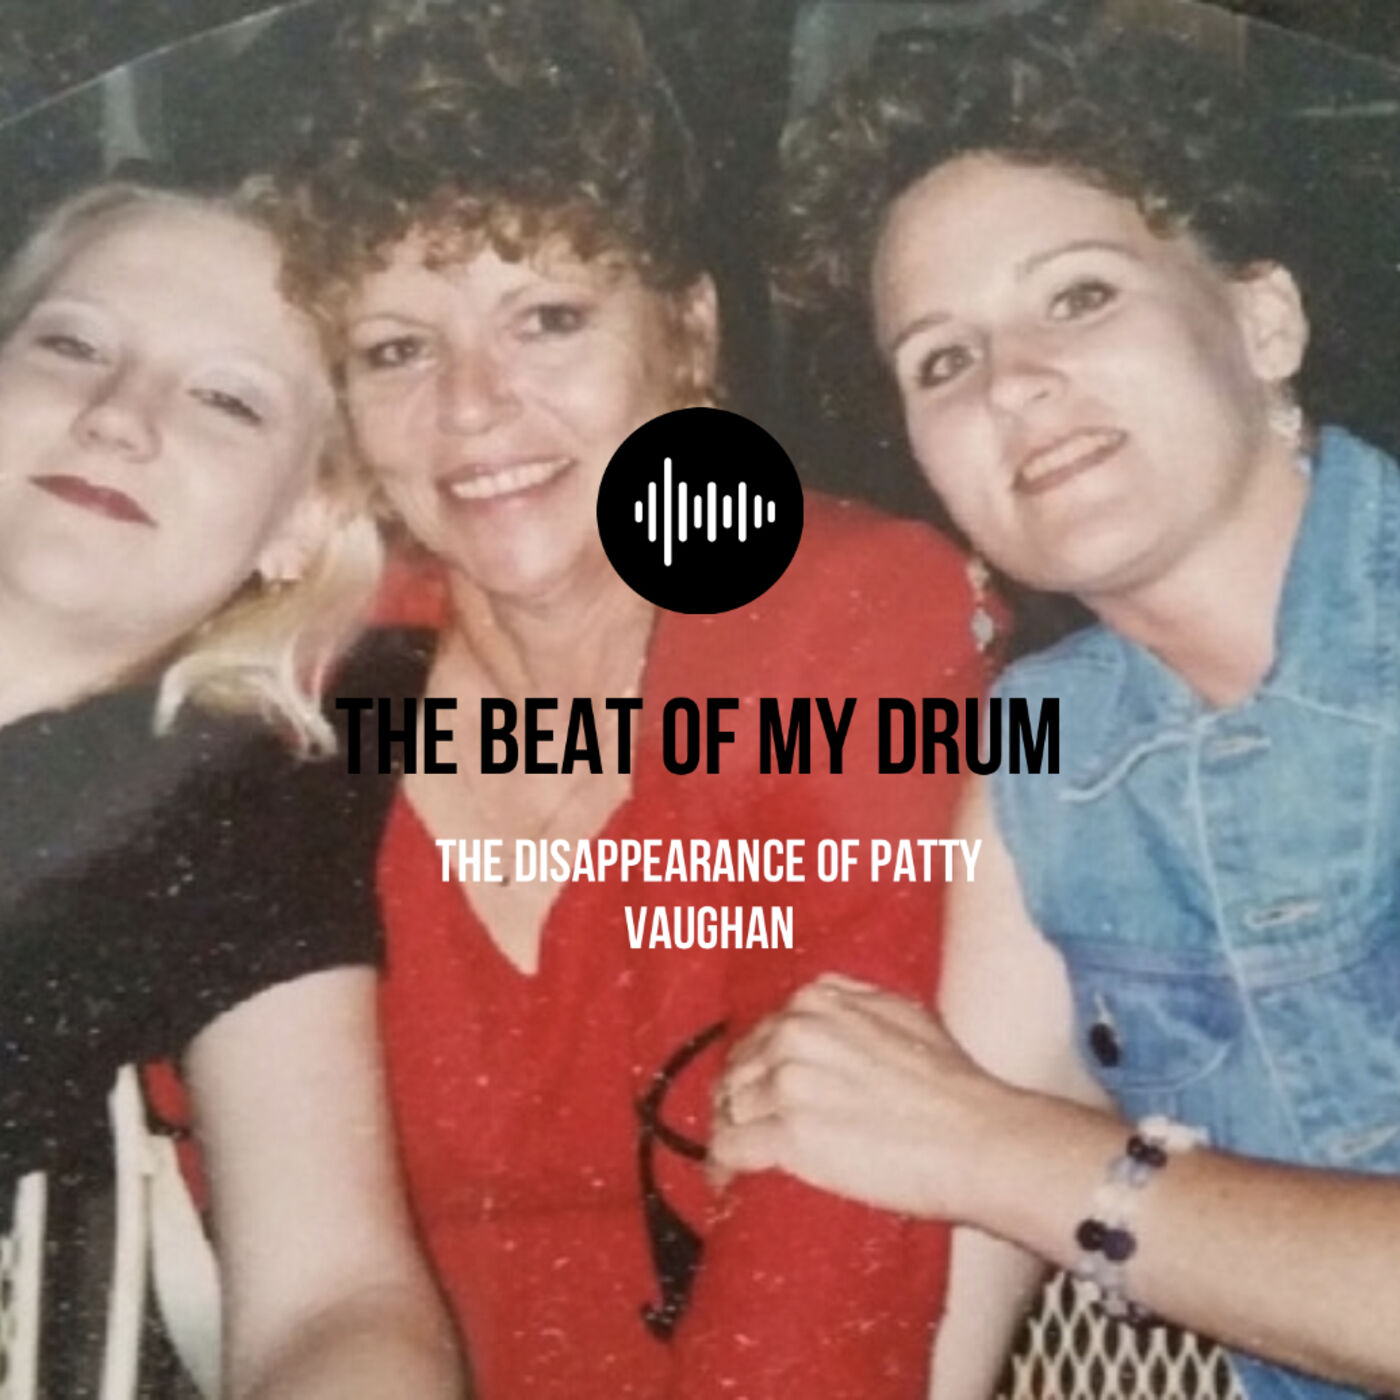 The Disappearance of Patty Vaughan (Interview w/ Sister, Jeannie Liams)